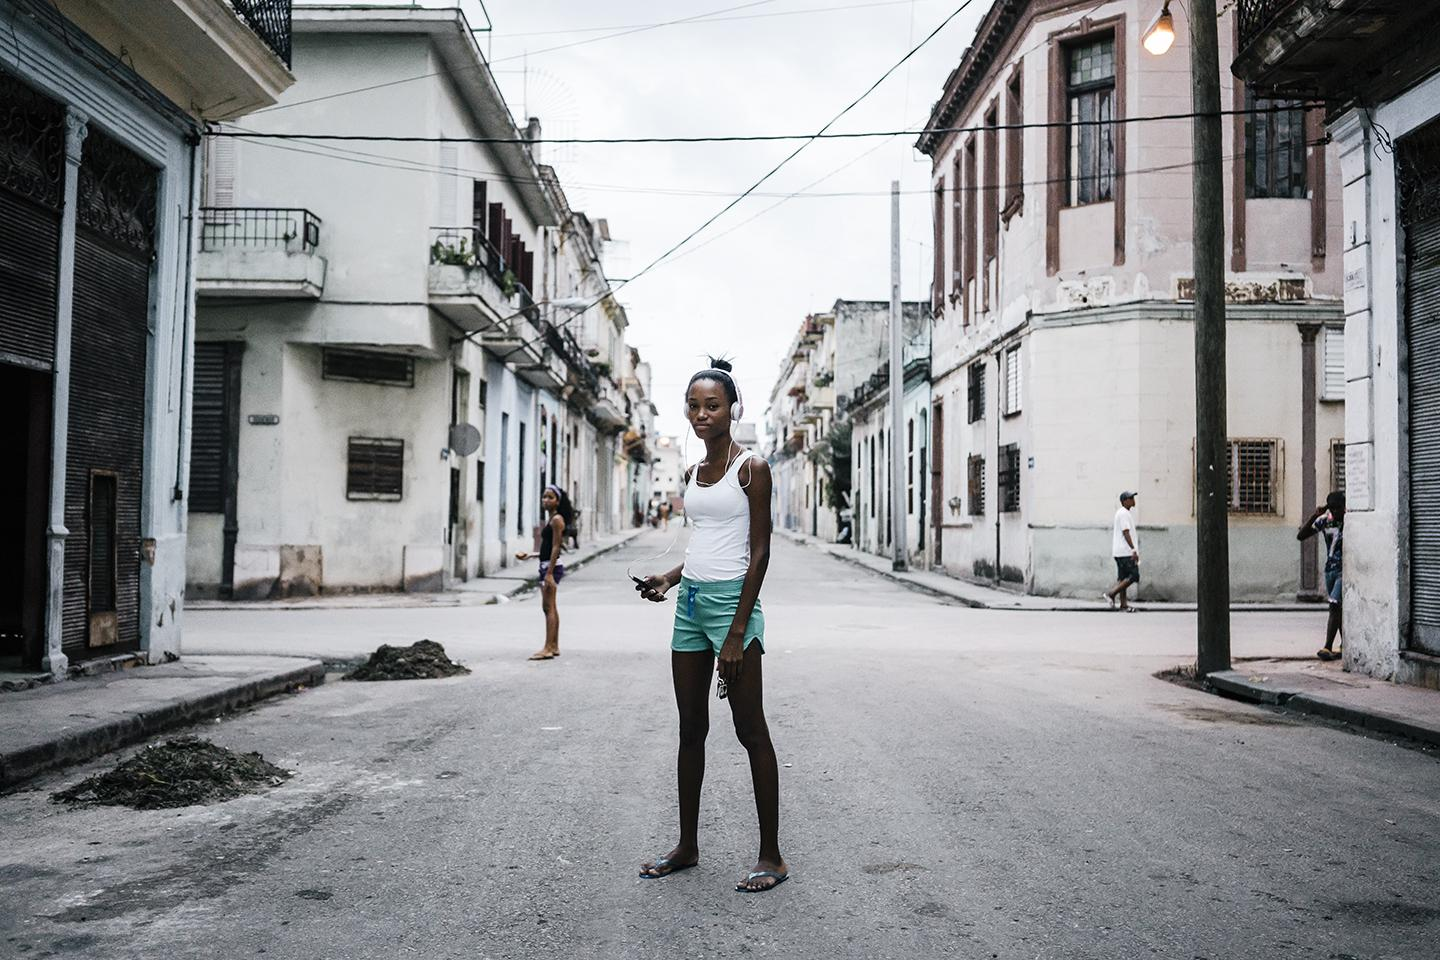 Anna Marie Mesa, 16, listens to music on her smartphone in Centro Havana. Technology is leapfrogging the infastructure in Cuba where citizens went from landlines to smartphones in a matter of months.